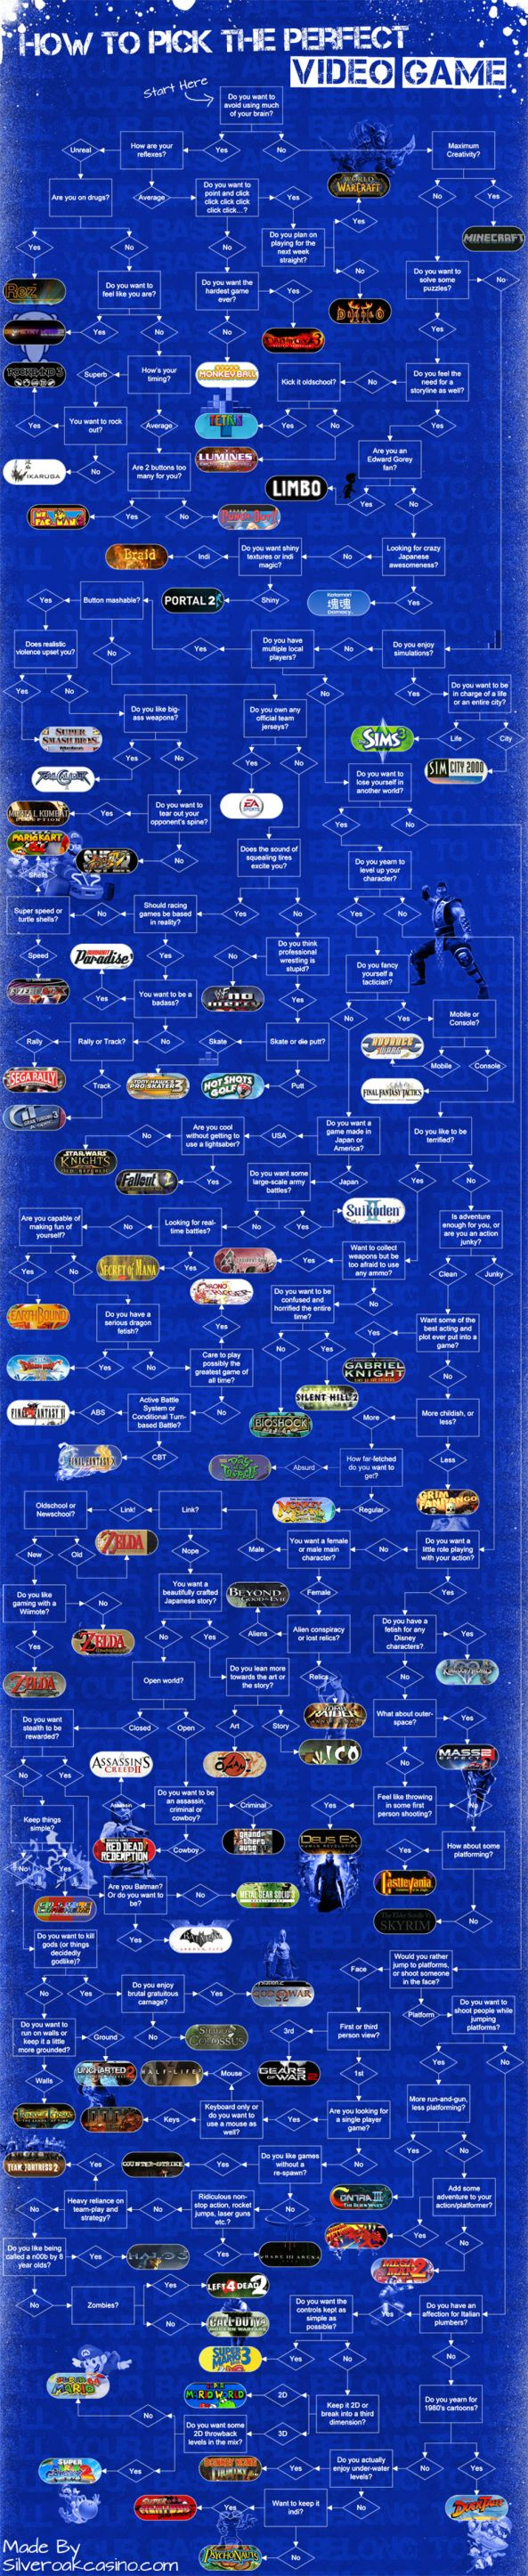 video-game-flowchart-large